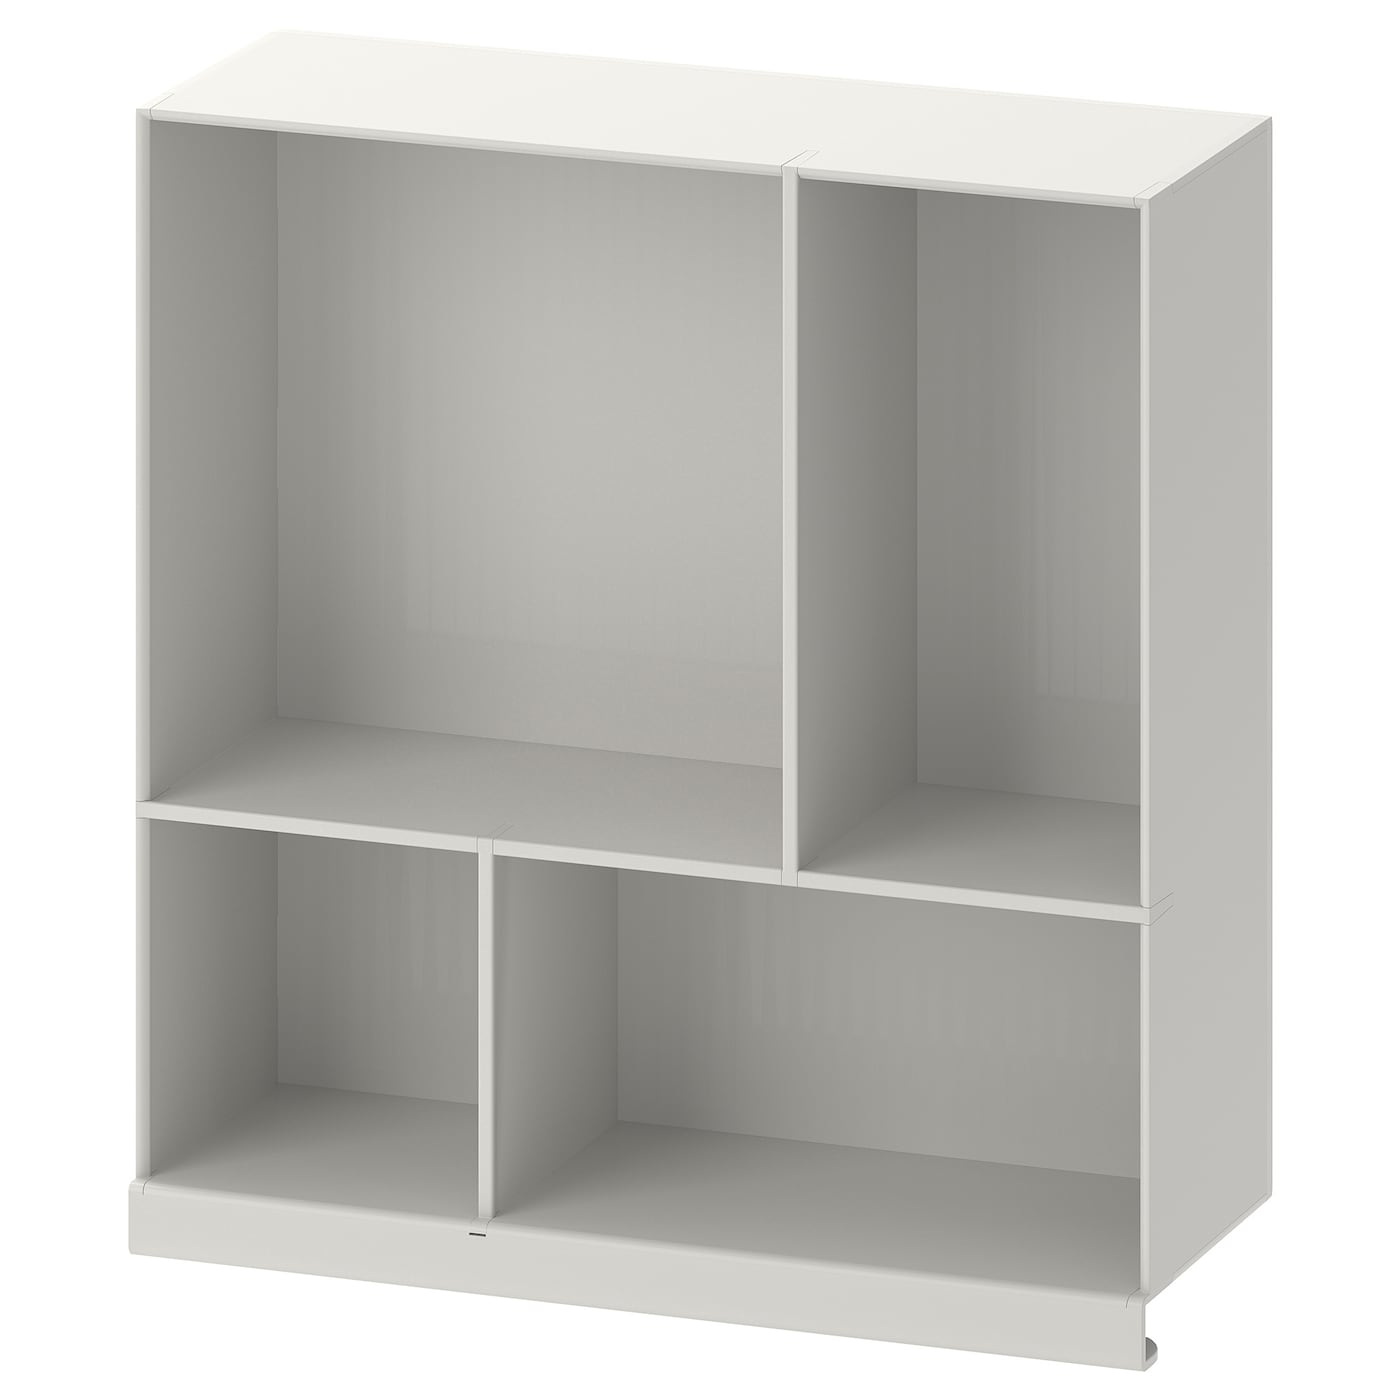 Kallax shelf insert light grey ikea - Mobile ikea kallax ...